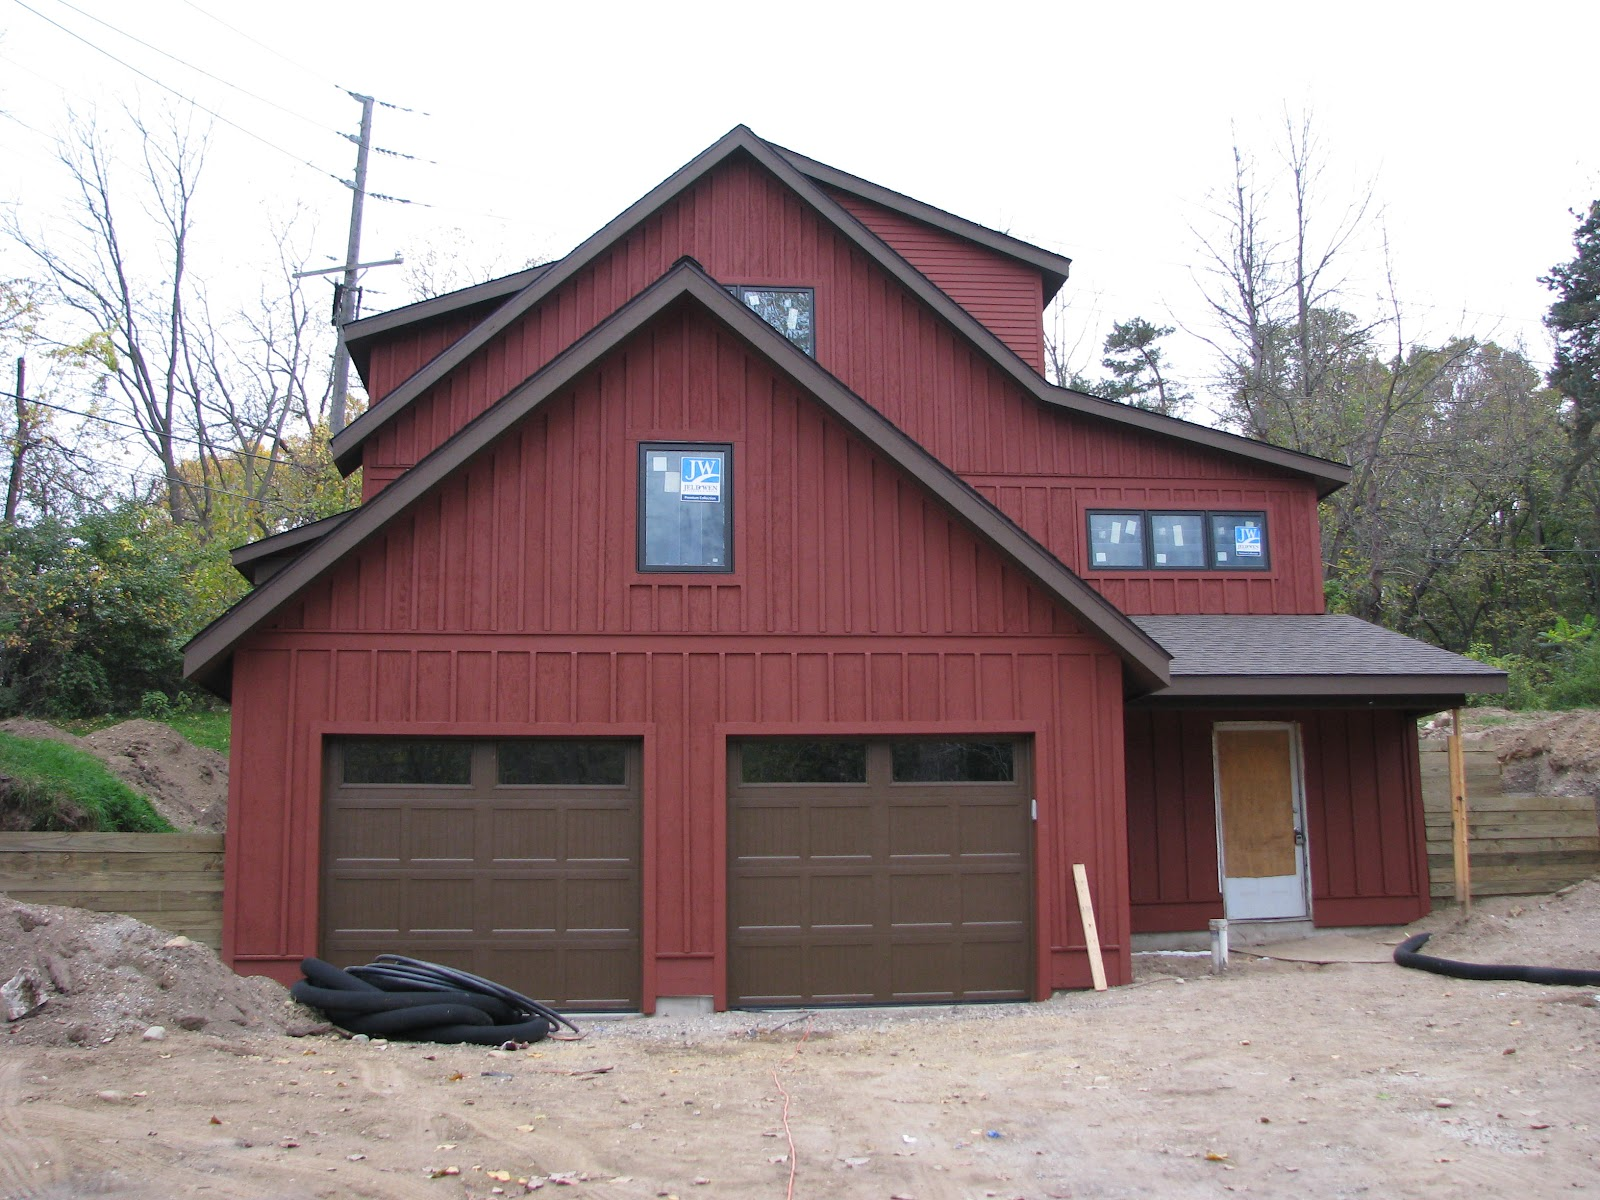 Discussed garage doors we went with plain brown to match the trim